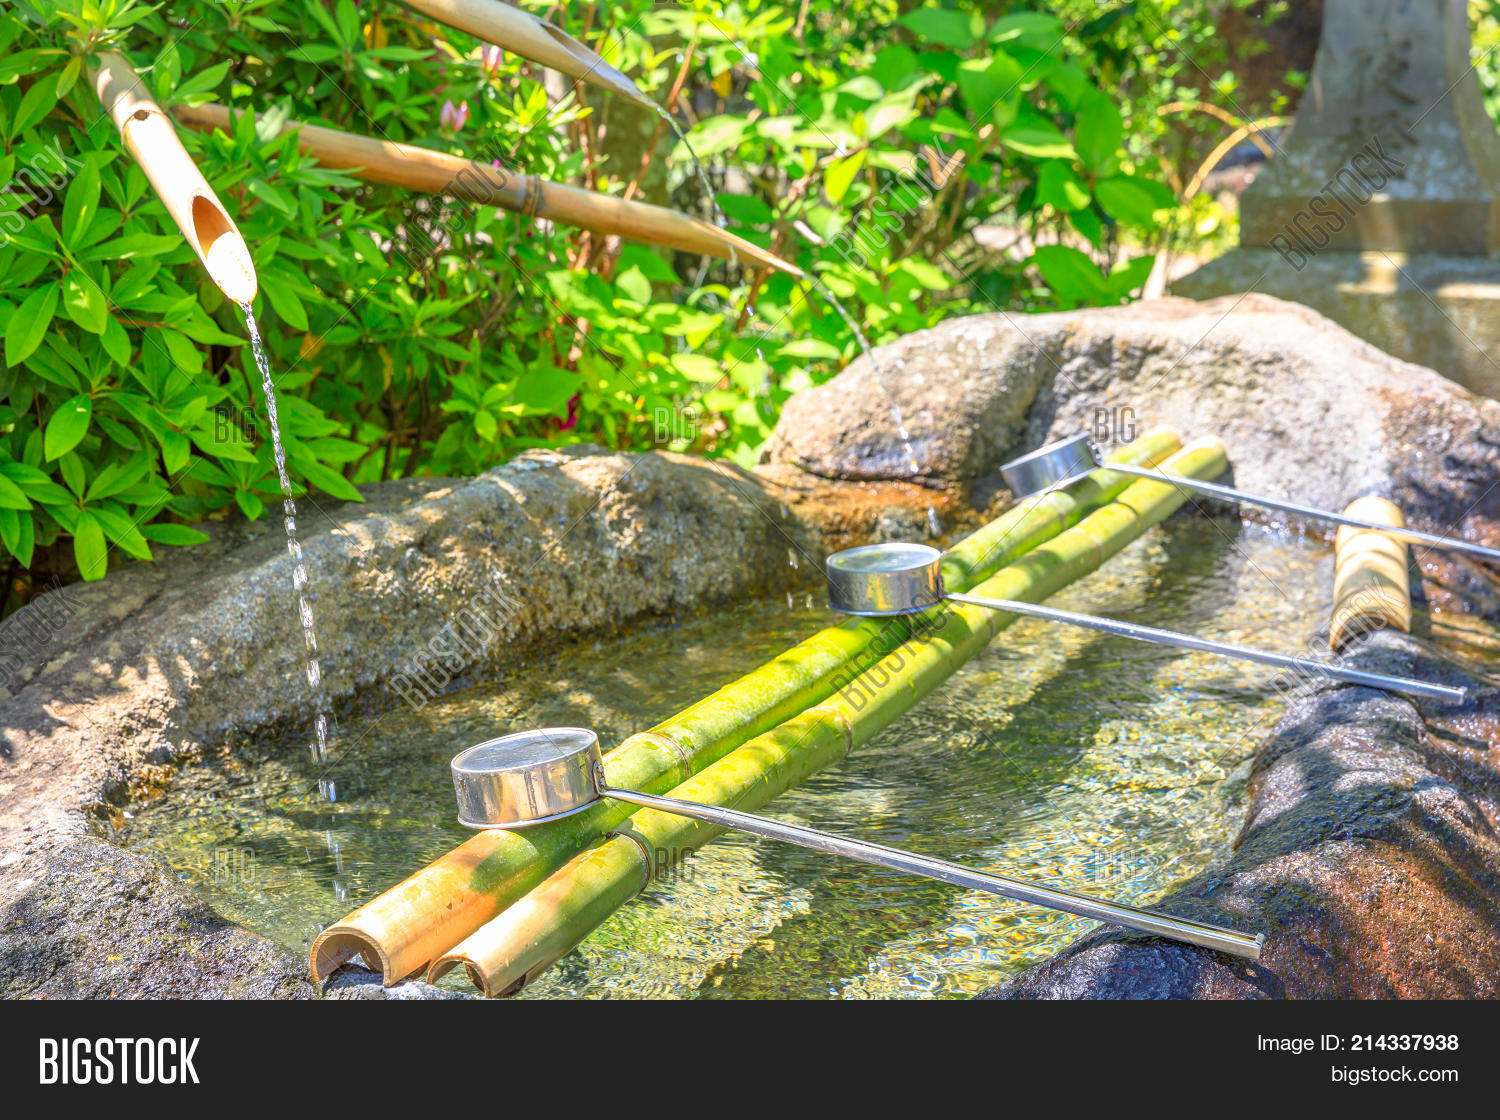 Close Up Of Japanese Bamboo Fountain And Ladles Used For Washing Hands Purification Fountain With